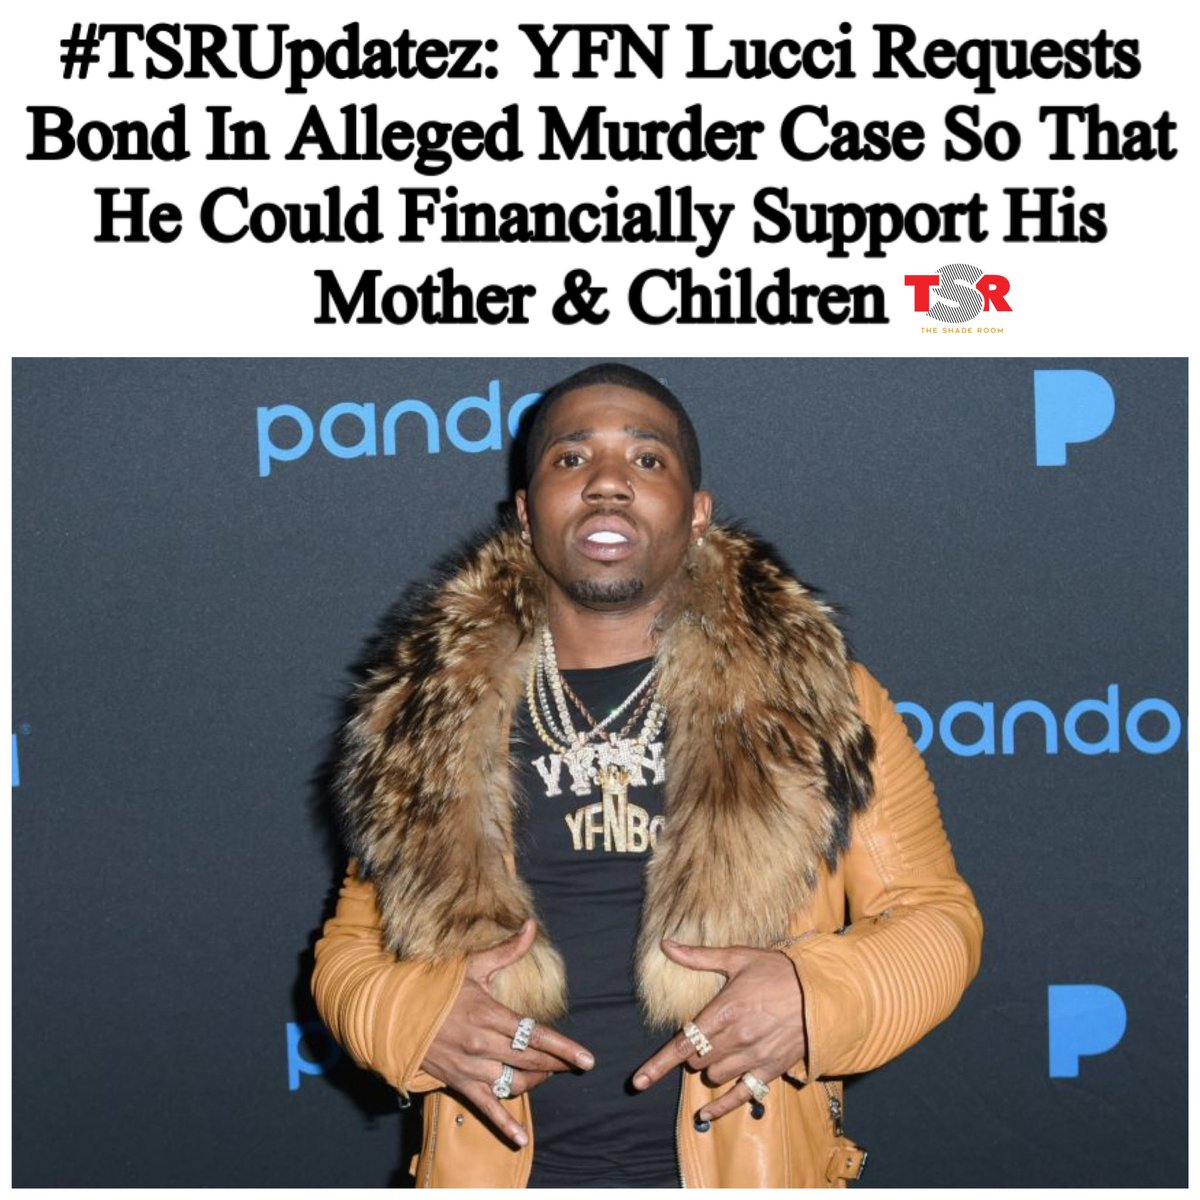 According to legal documents obtained by @TMZ_tv, YFN Lucci asked the judge to set a reasonable bond because he has